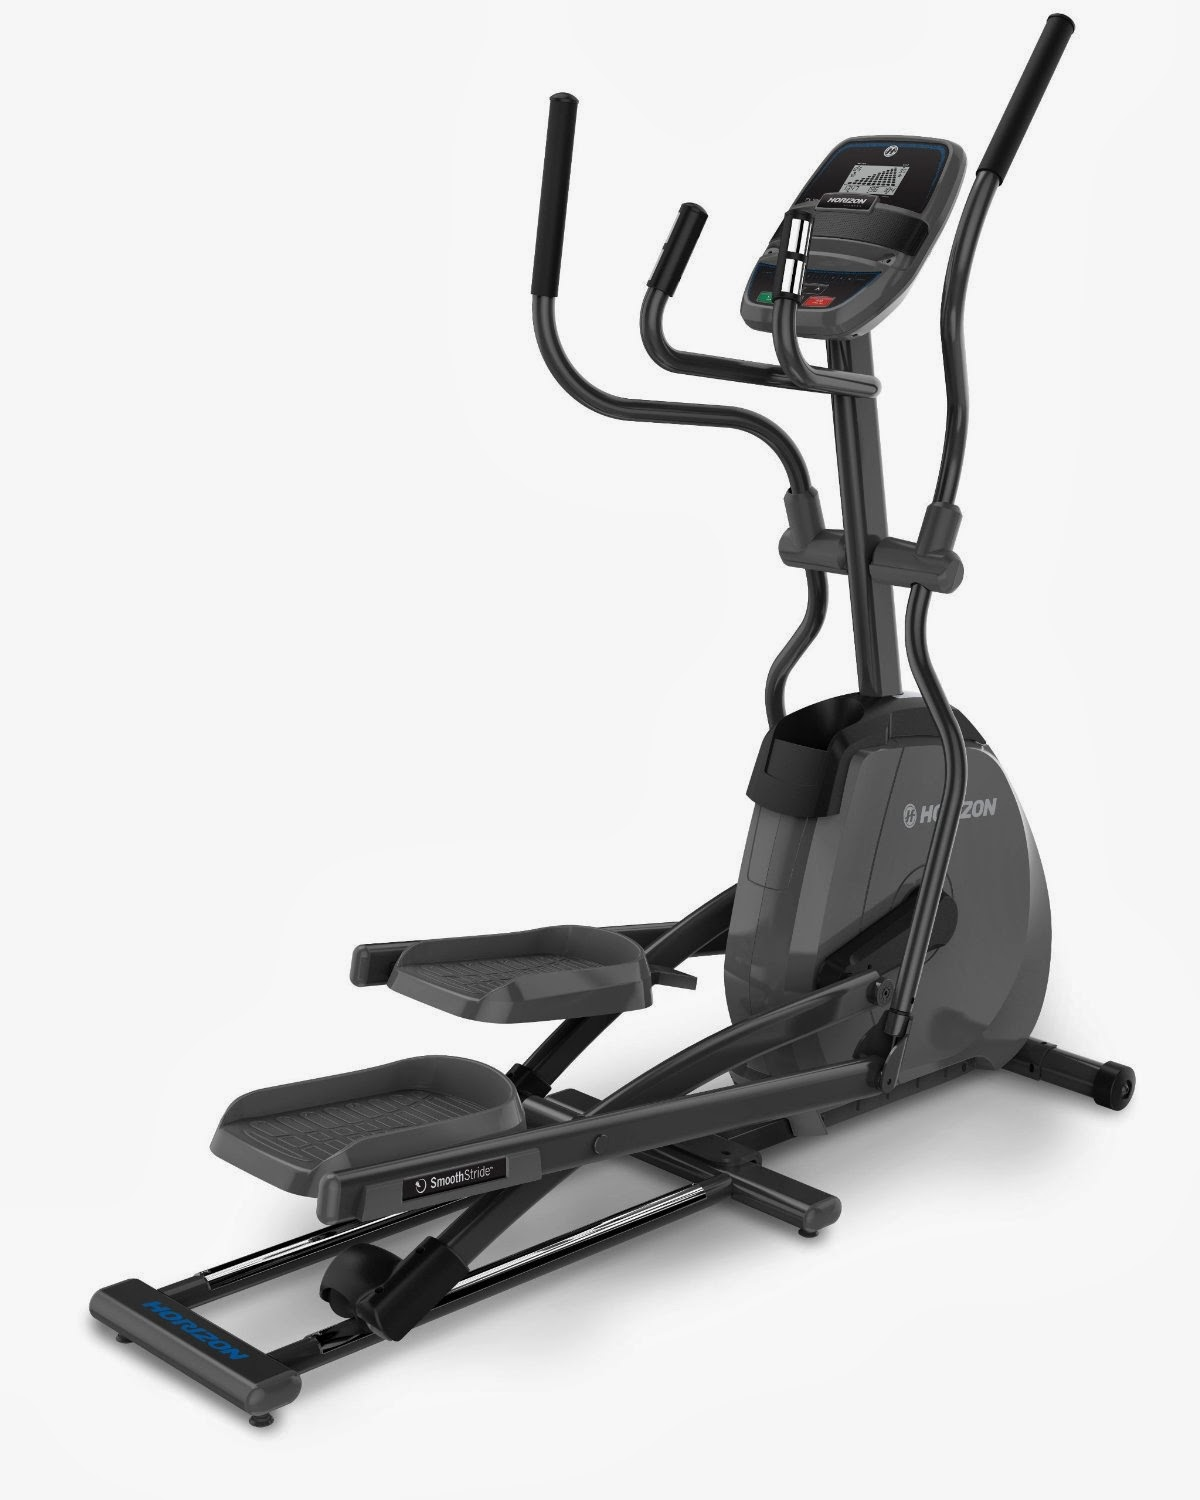 Horizon Elliptical Trainer Review: Best Fitness Equipment : Horizon Fitness EX-59-02